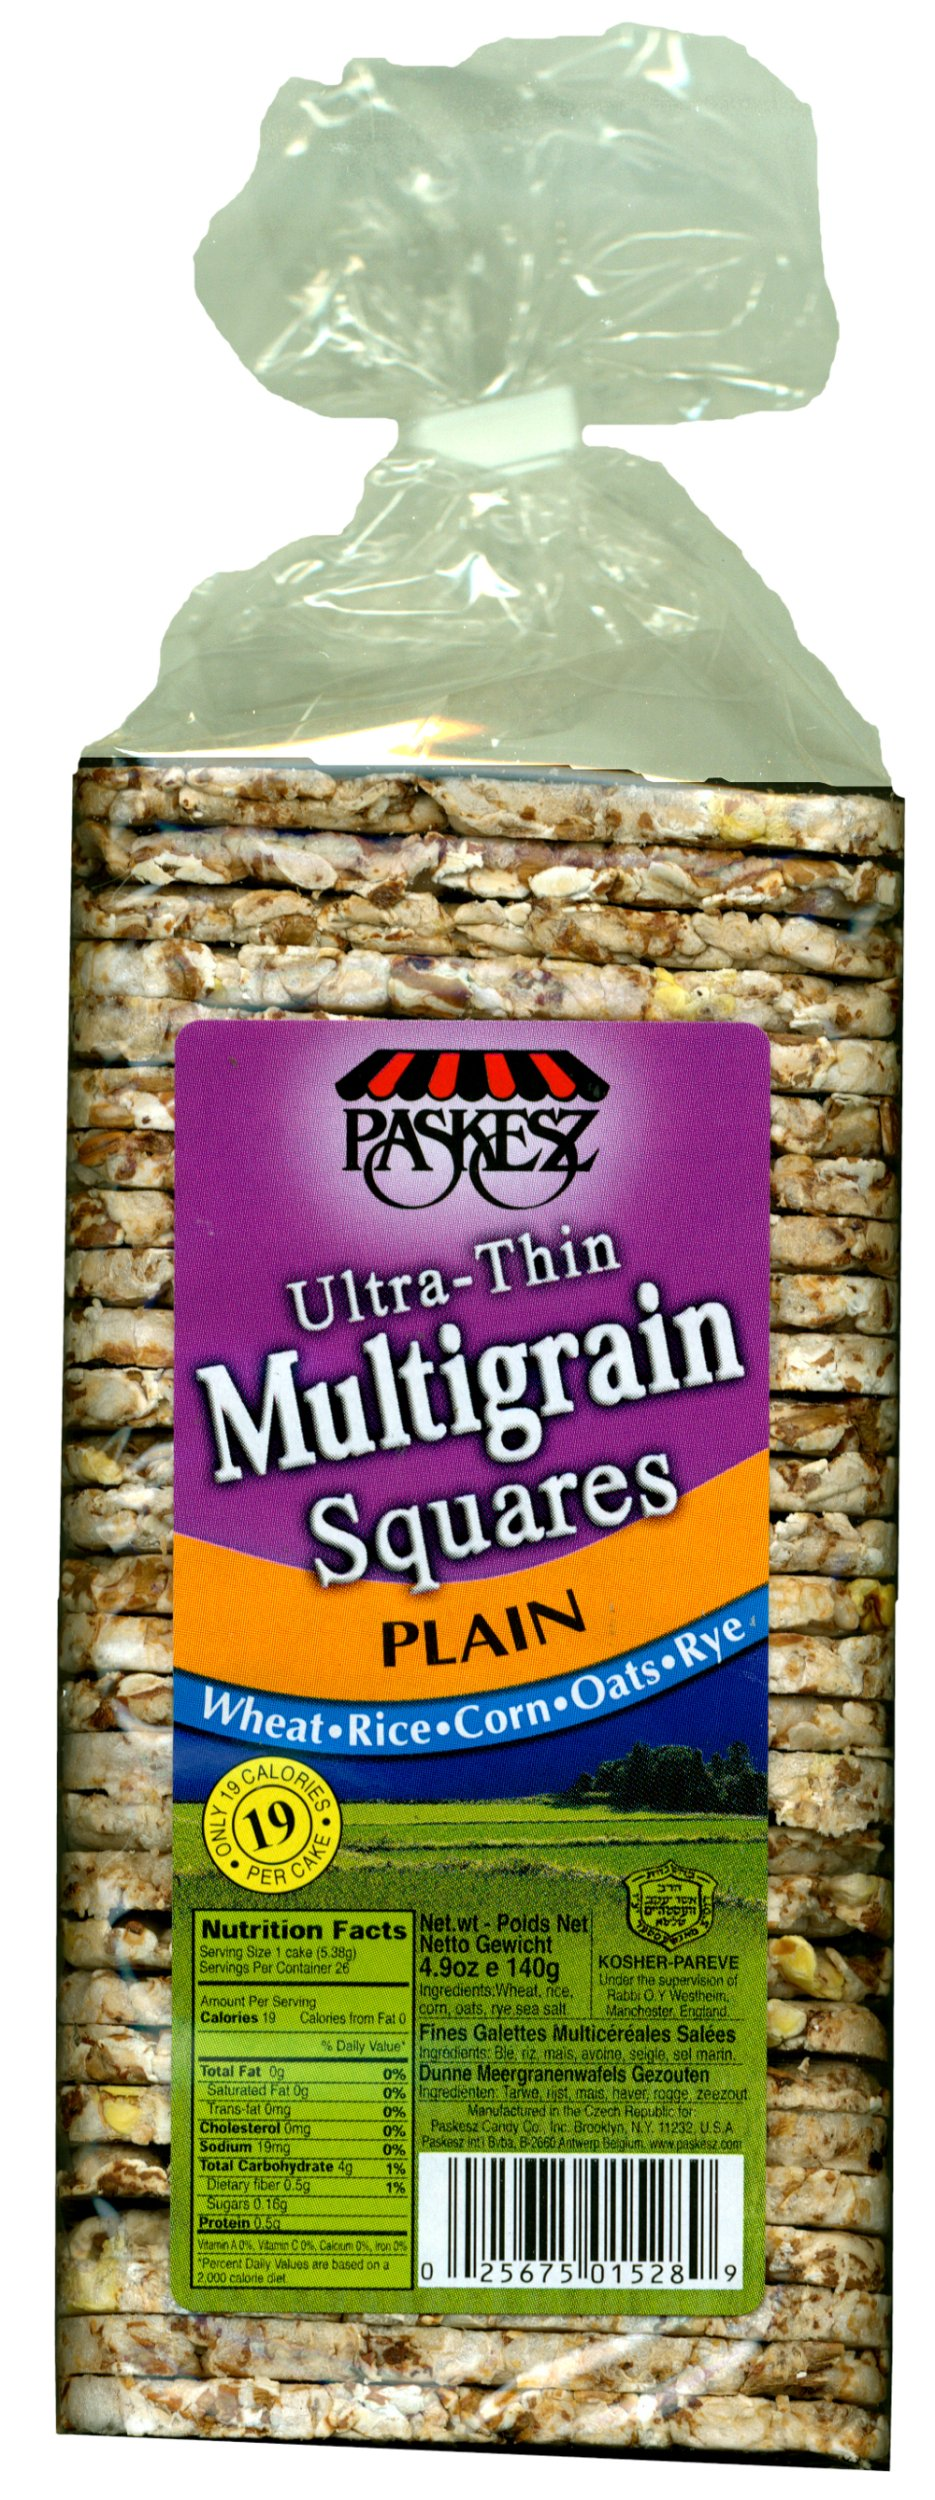 Paskesz Multigrain Square Plain, 4.9-Ounce Packages (Pack of 12)